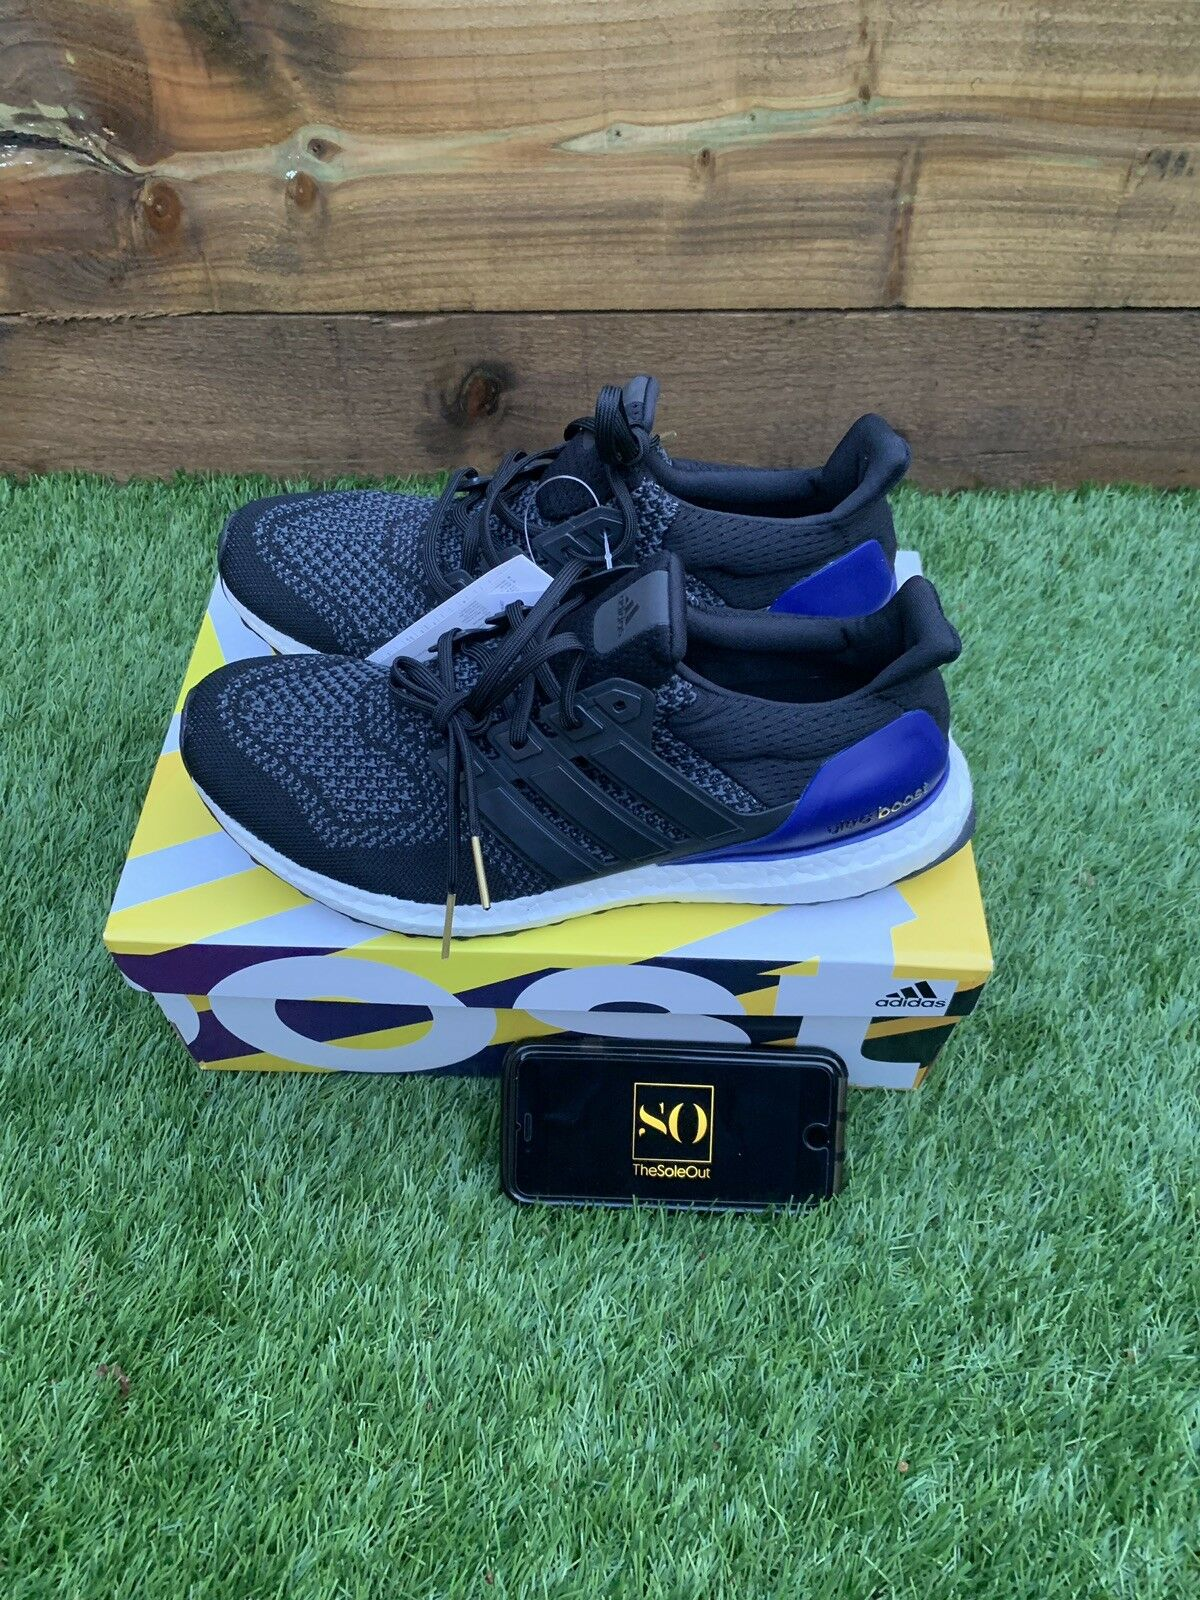 Adidas Ultra Boost OG 1.0 Black Purple UK 9.5